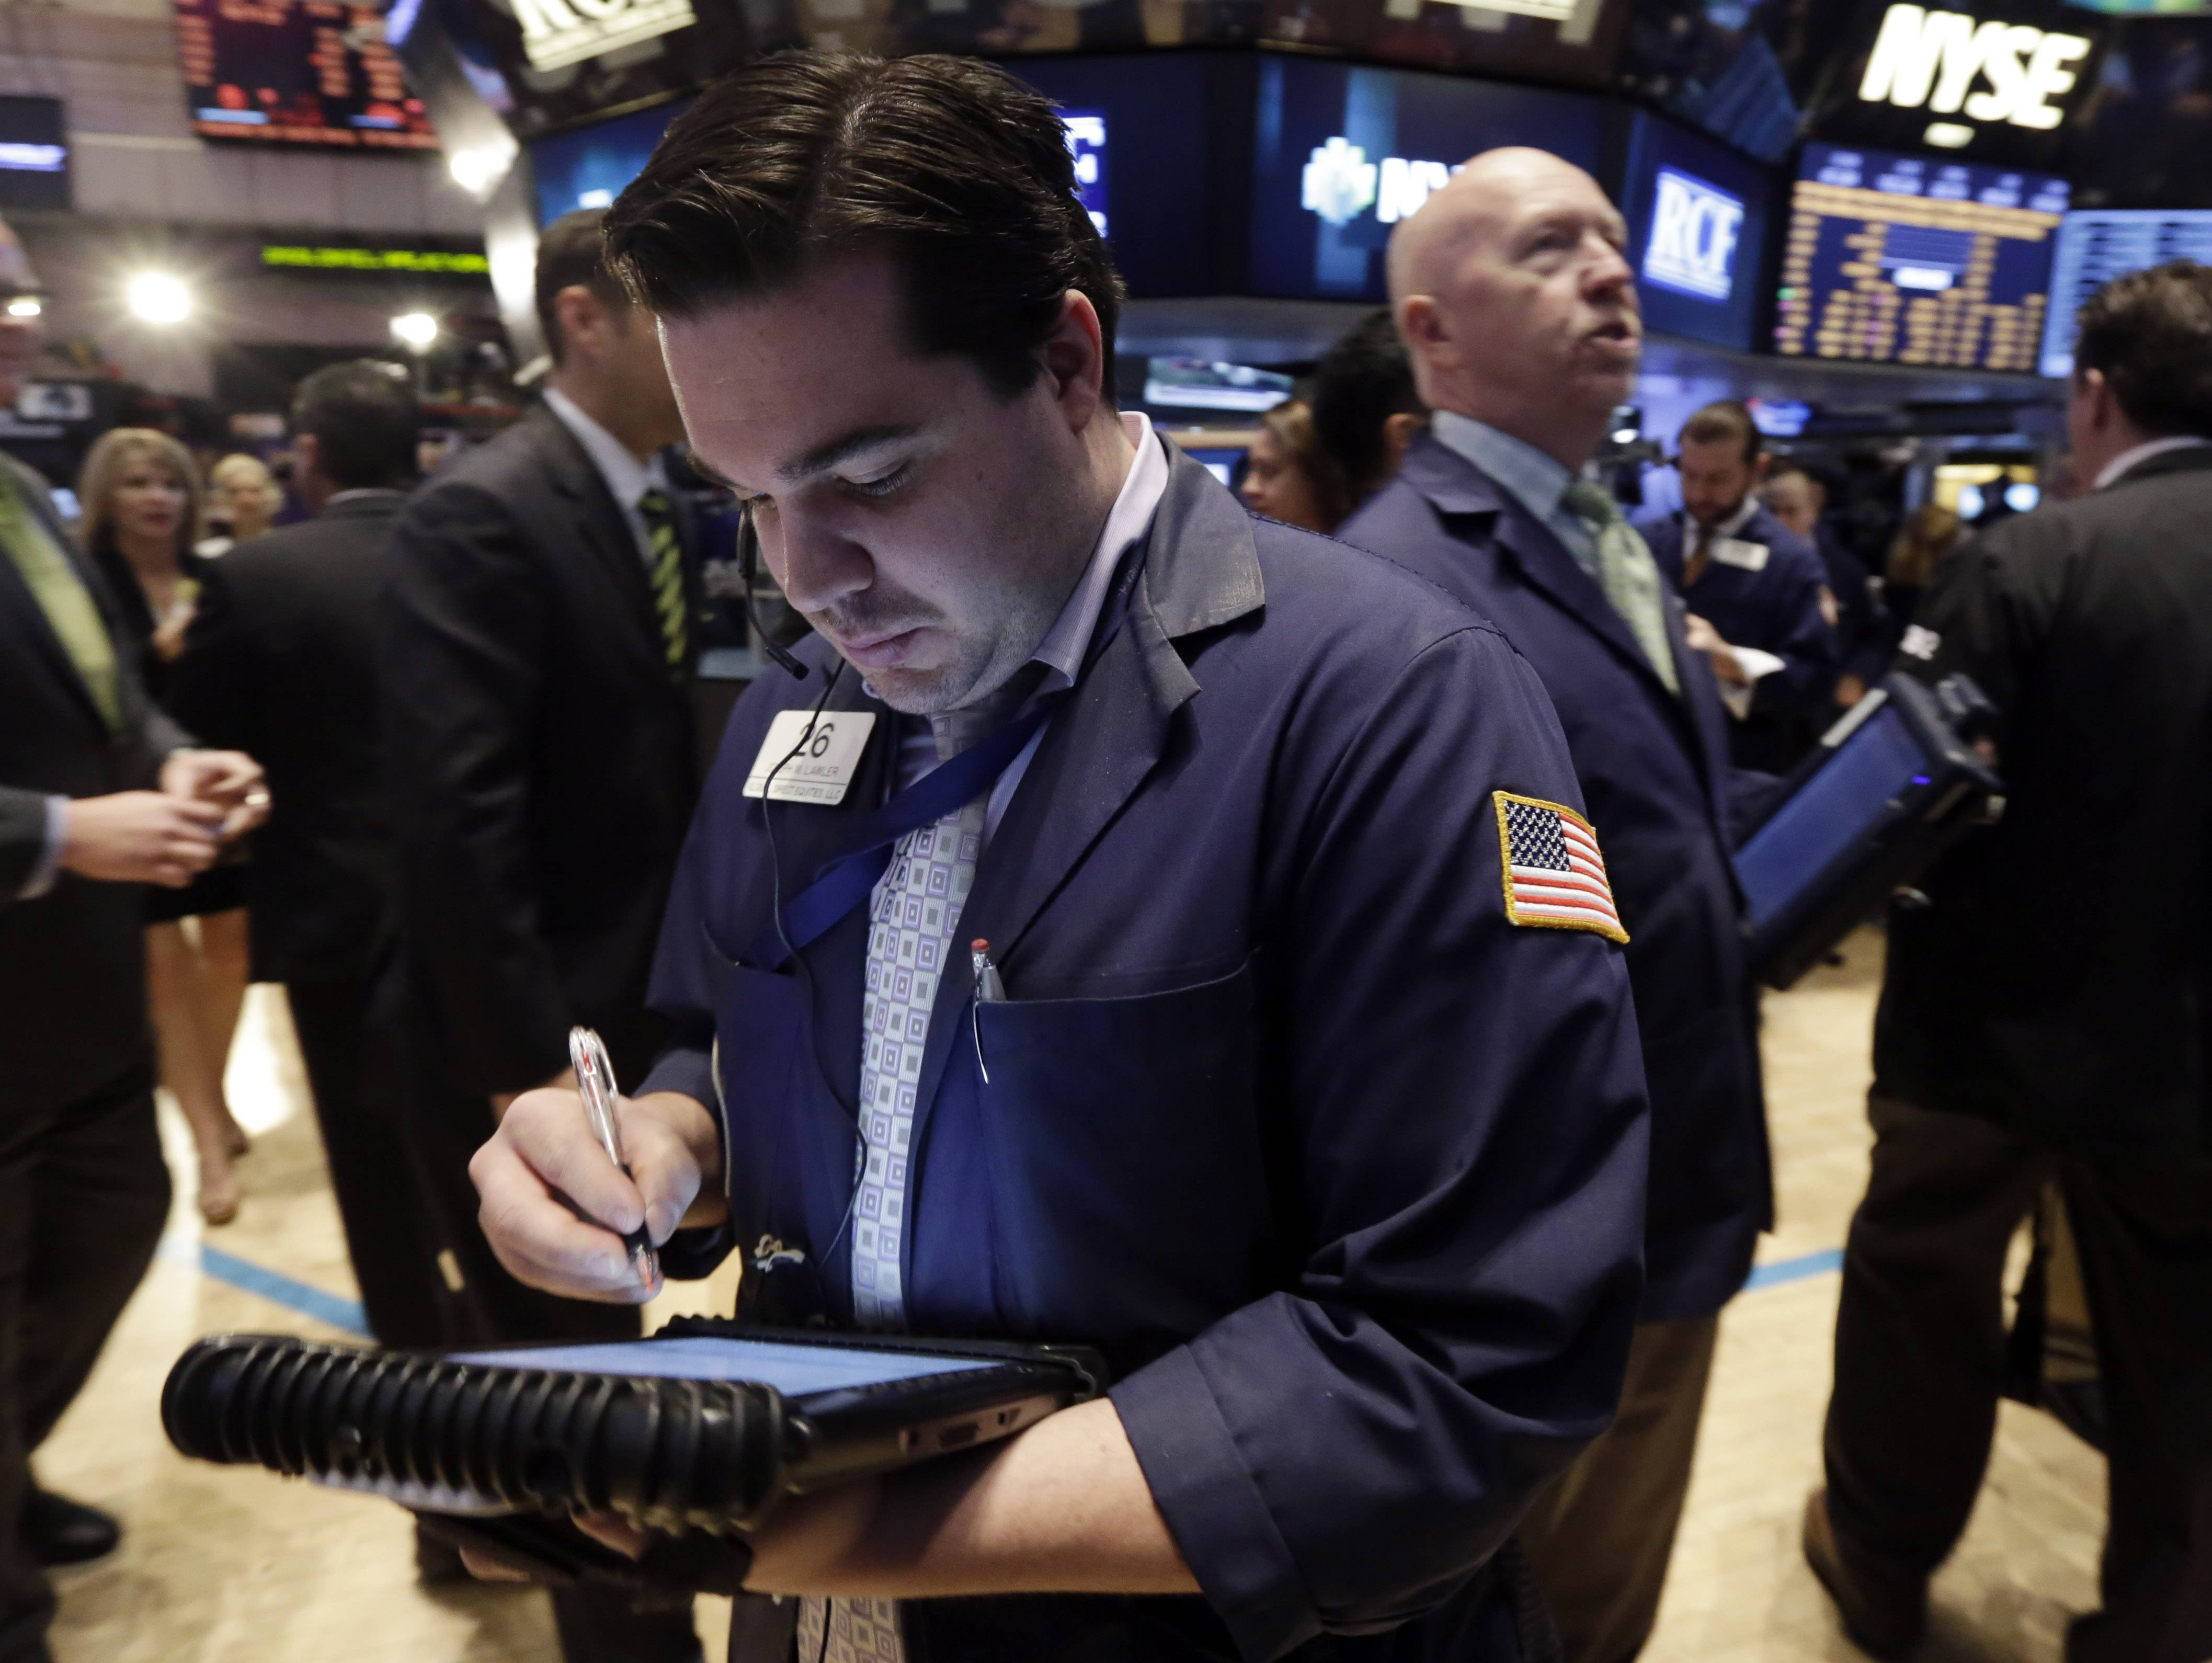 Stocks rose a fifth day Monday, with the Standard & Poor's 500 Index capping its longest streak since October, amid signs of improving corporate earnings.